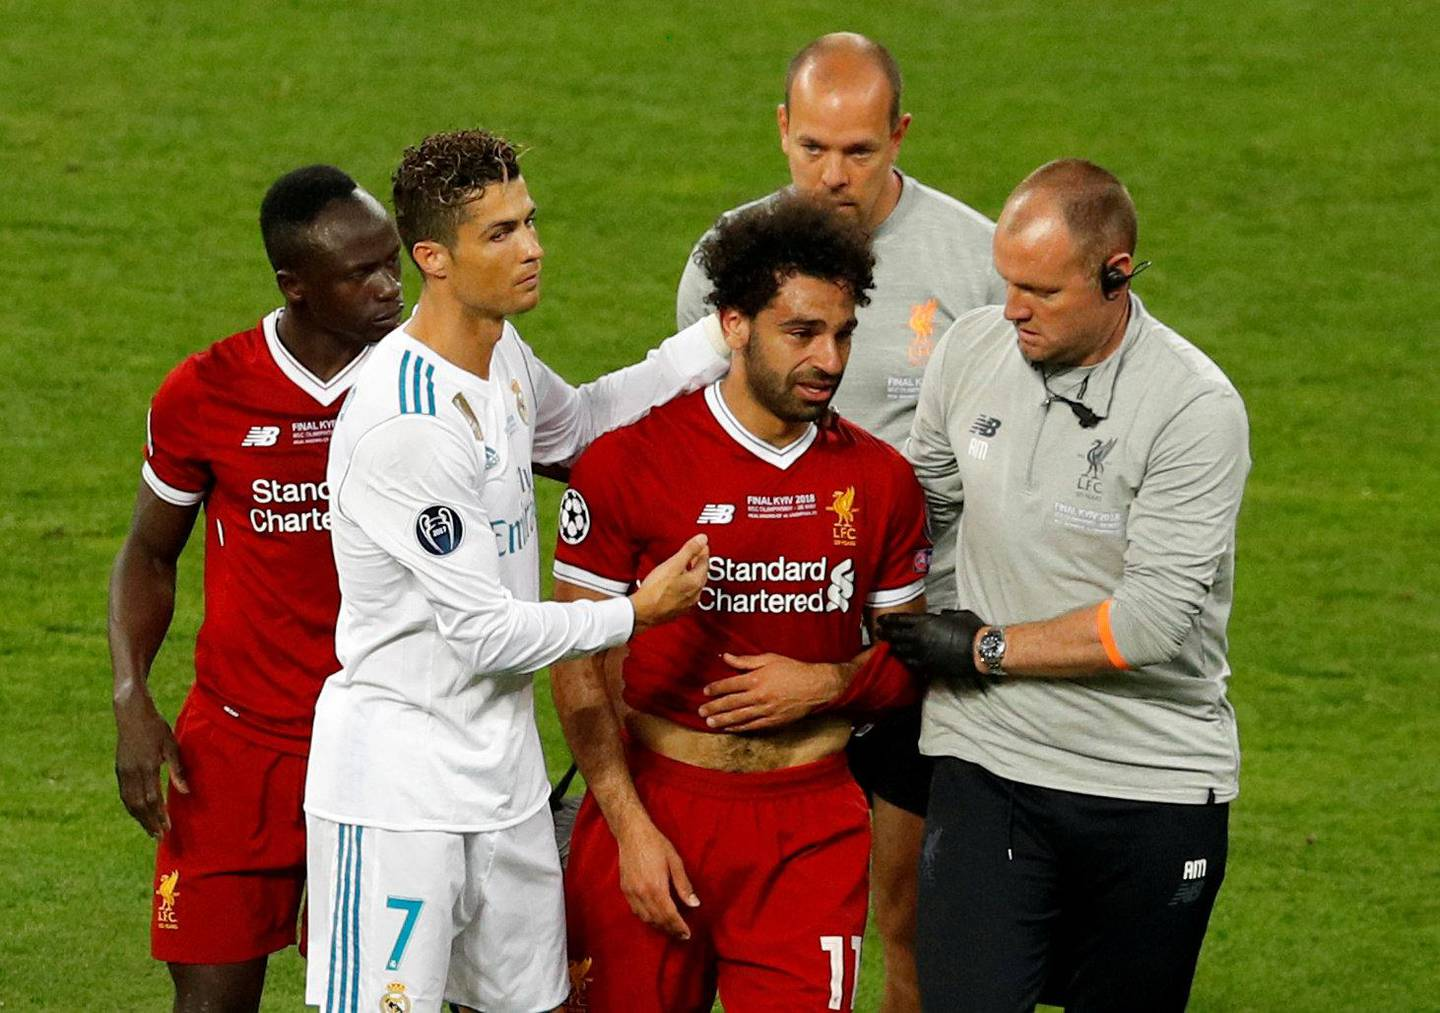 FILE PHOTO: Soccer Football - Champions League Final - Real Madrid v Liverpool - NSC Olympic Stadium, Kiev, Ukraine - May 26, 2018   Liverpool's Mohamed Salah with Sadio Mane and Real Madrid's Cristiano Ronaldo as he is substituted after sustaining an injury   REUTERS/Phil Noble/File Photo